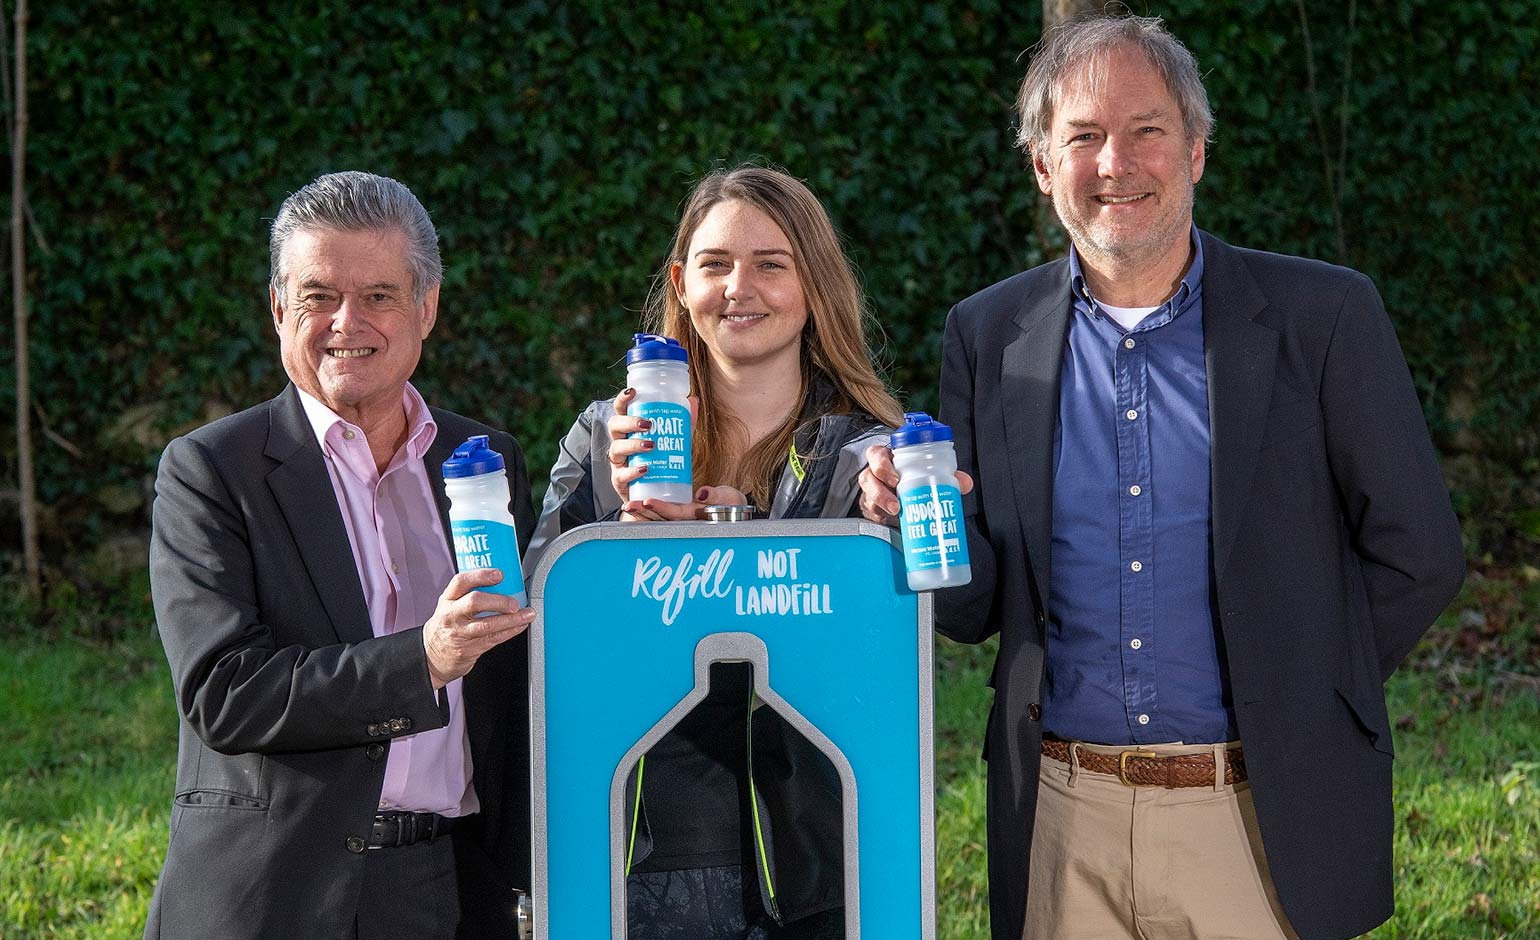 New partnership set to offer fresh tap water to Bath Half Marathon runners